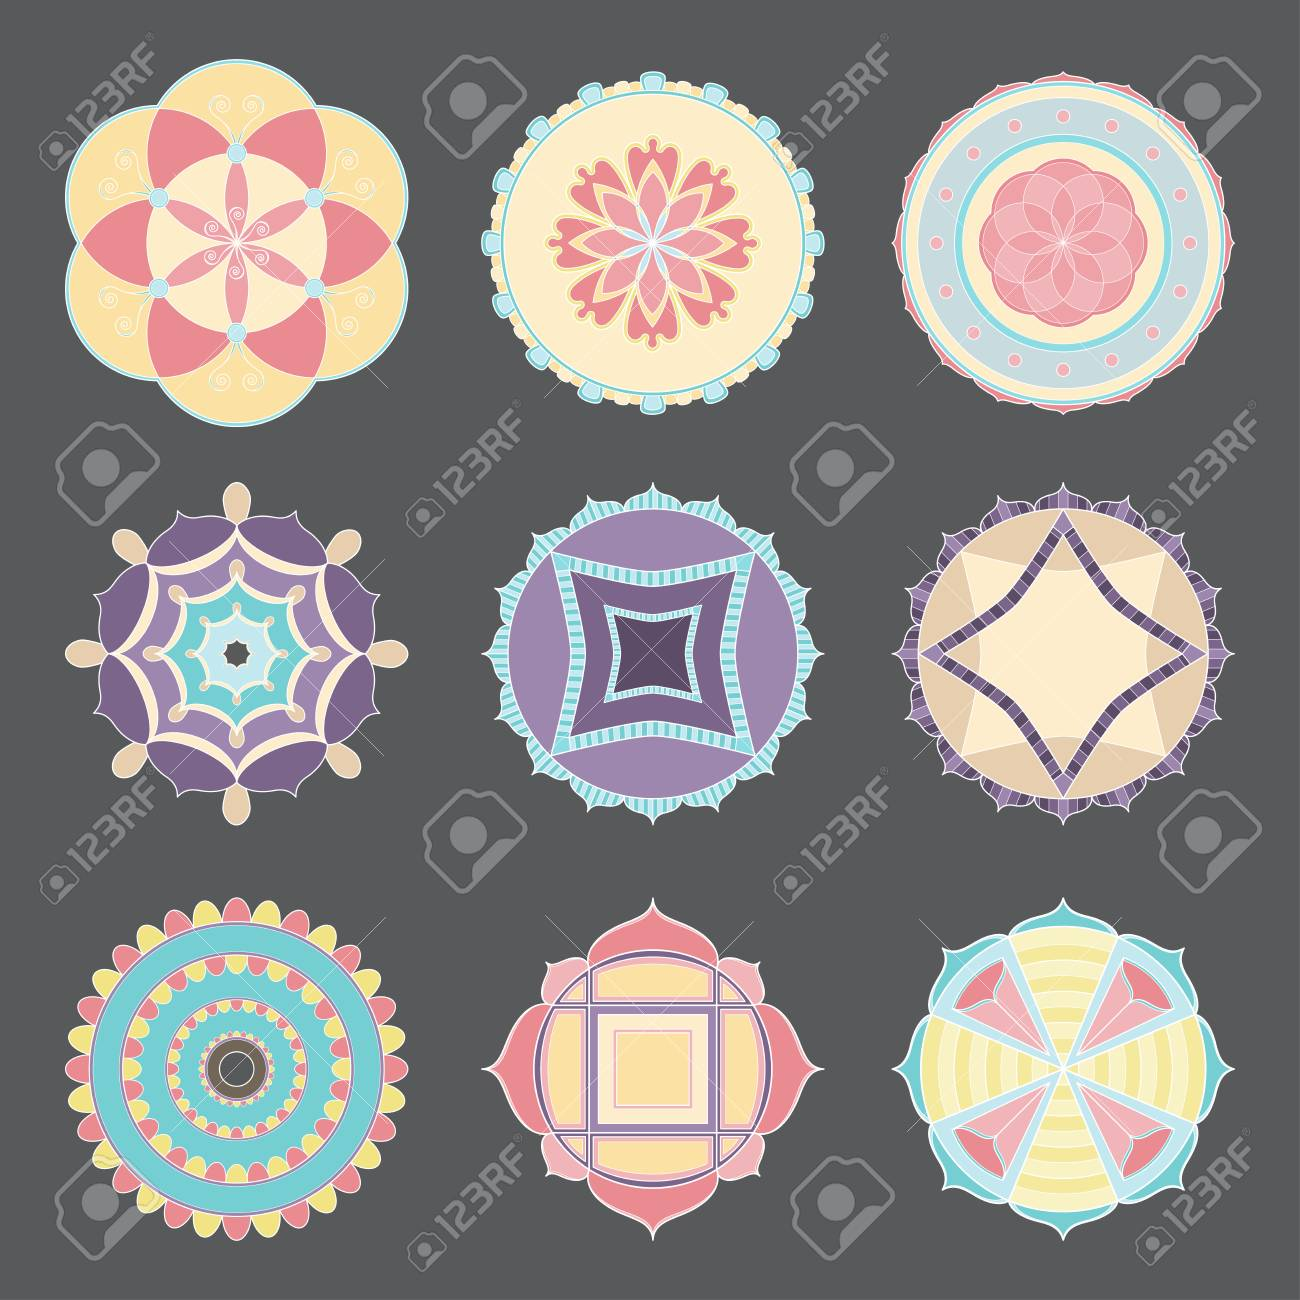 Isolated Simple Designs Of Colorful Mandalas Useful For Coloring Pages And Books And As A Decoration In Any Form